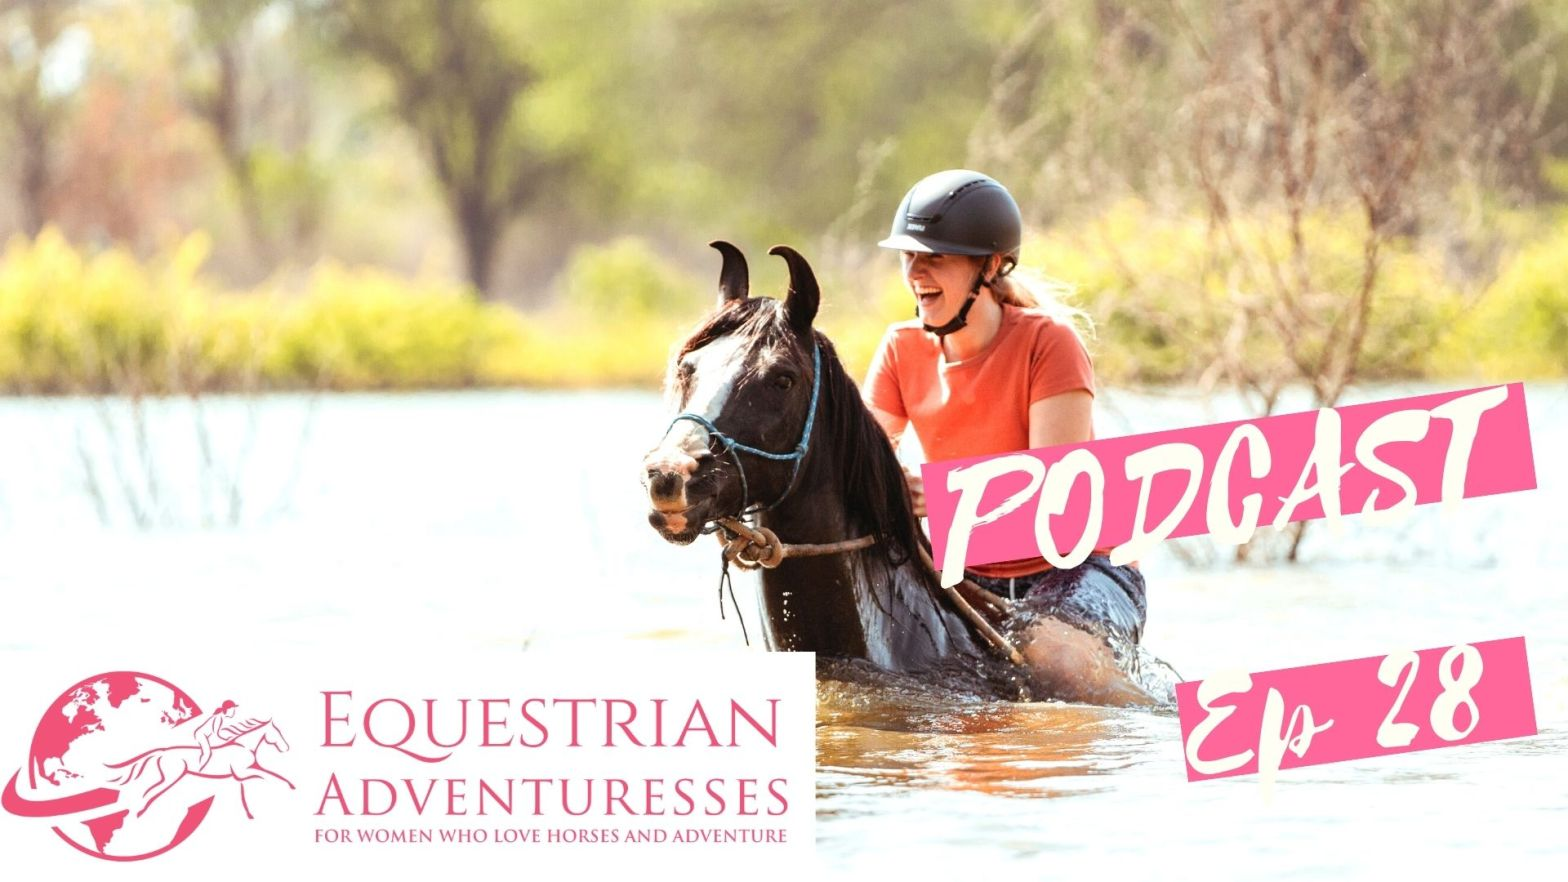 Equestrian Adventuresses Travel and Horse Podcast Ep 28 - featured: National Geographic Top Ten Horse Riding Holiday Destinations